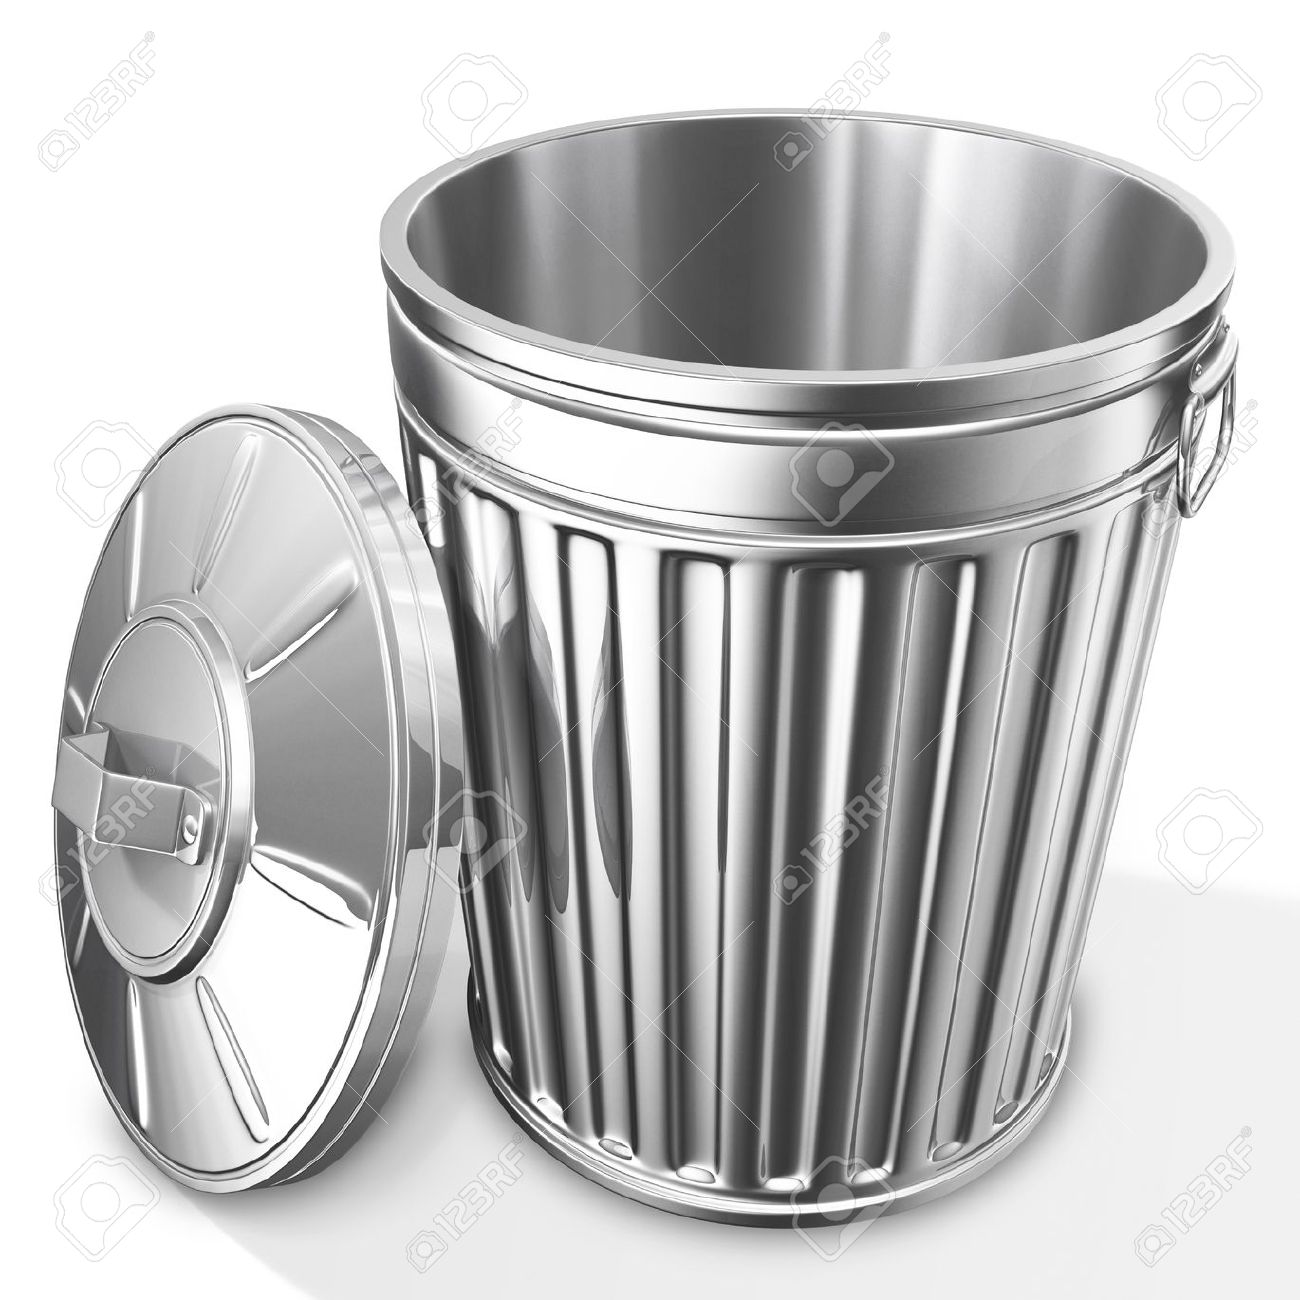 3d Rendered Of Empty Trash Can On White Background With Shadow Stock